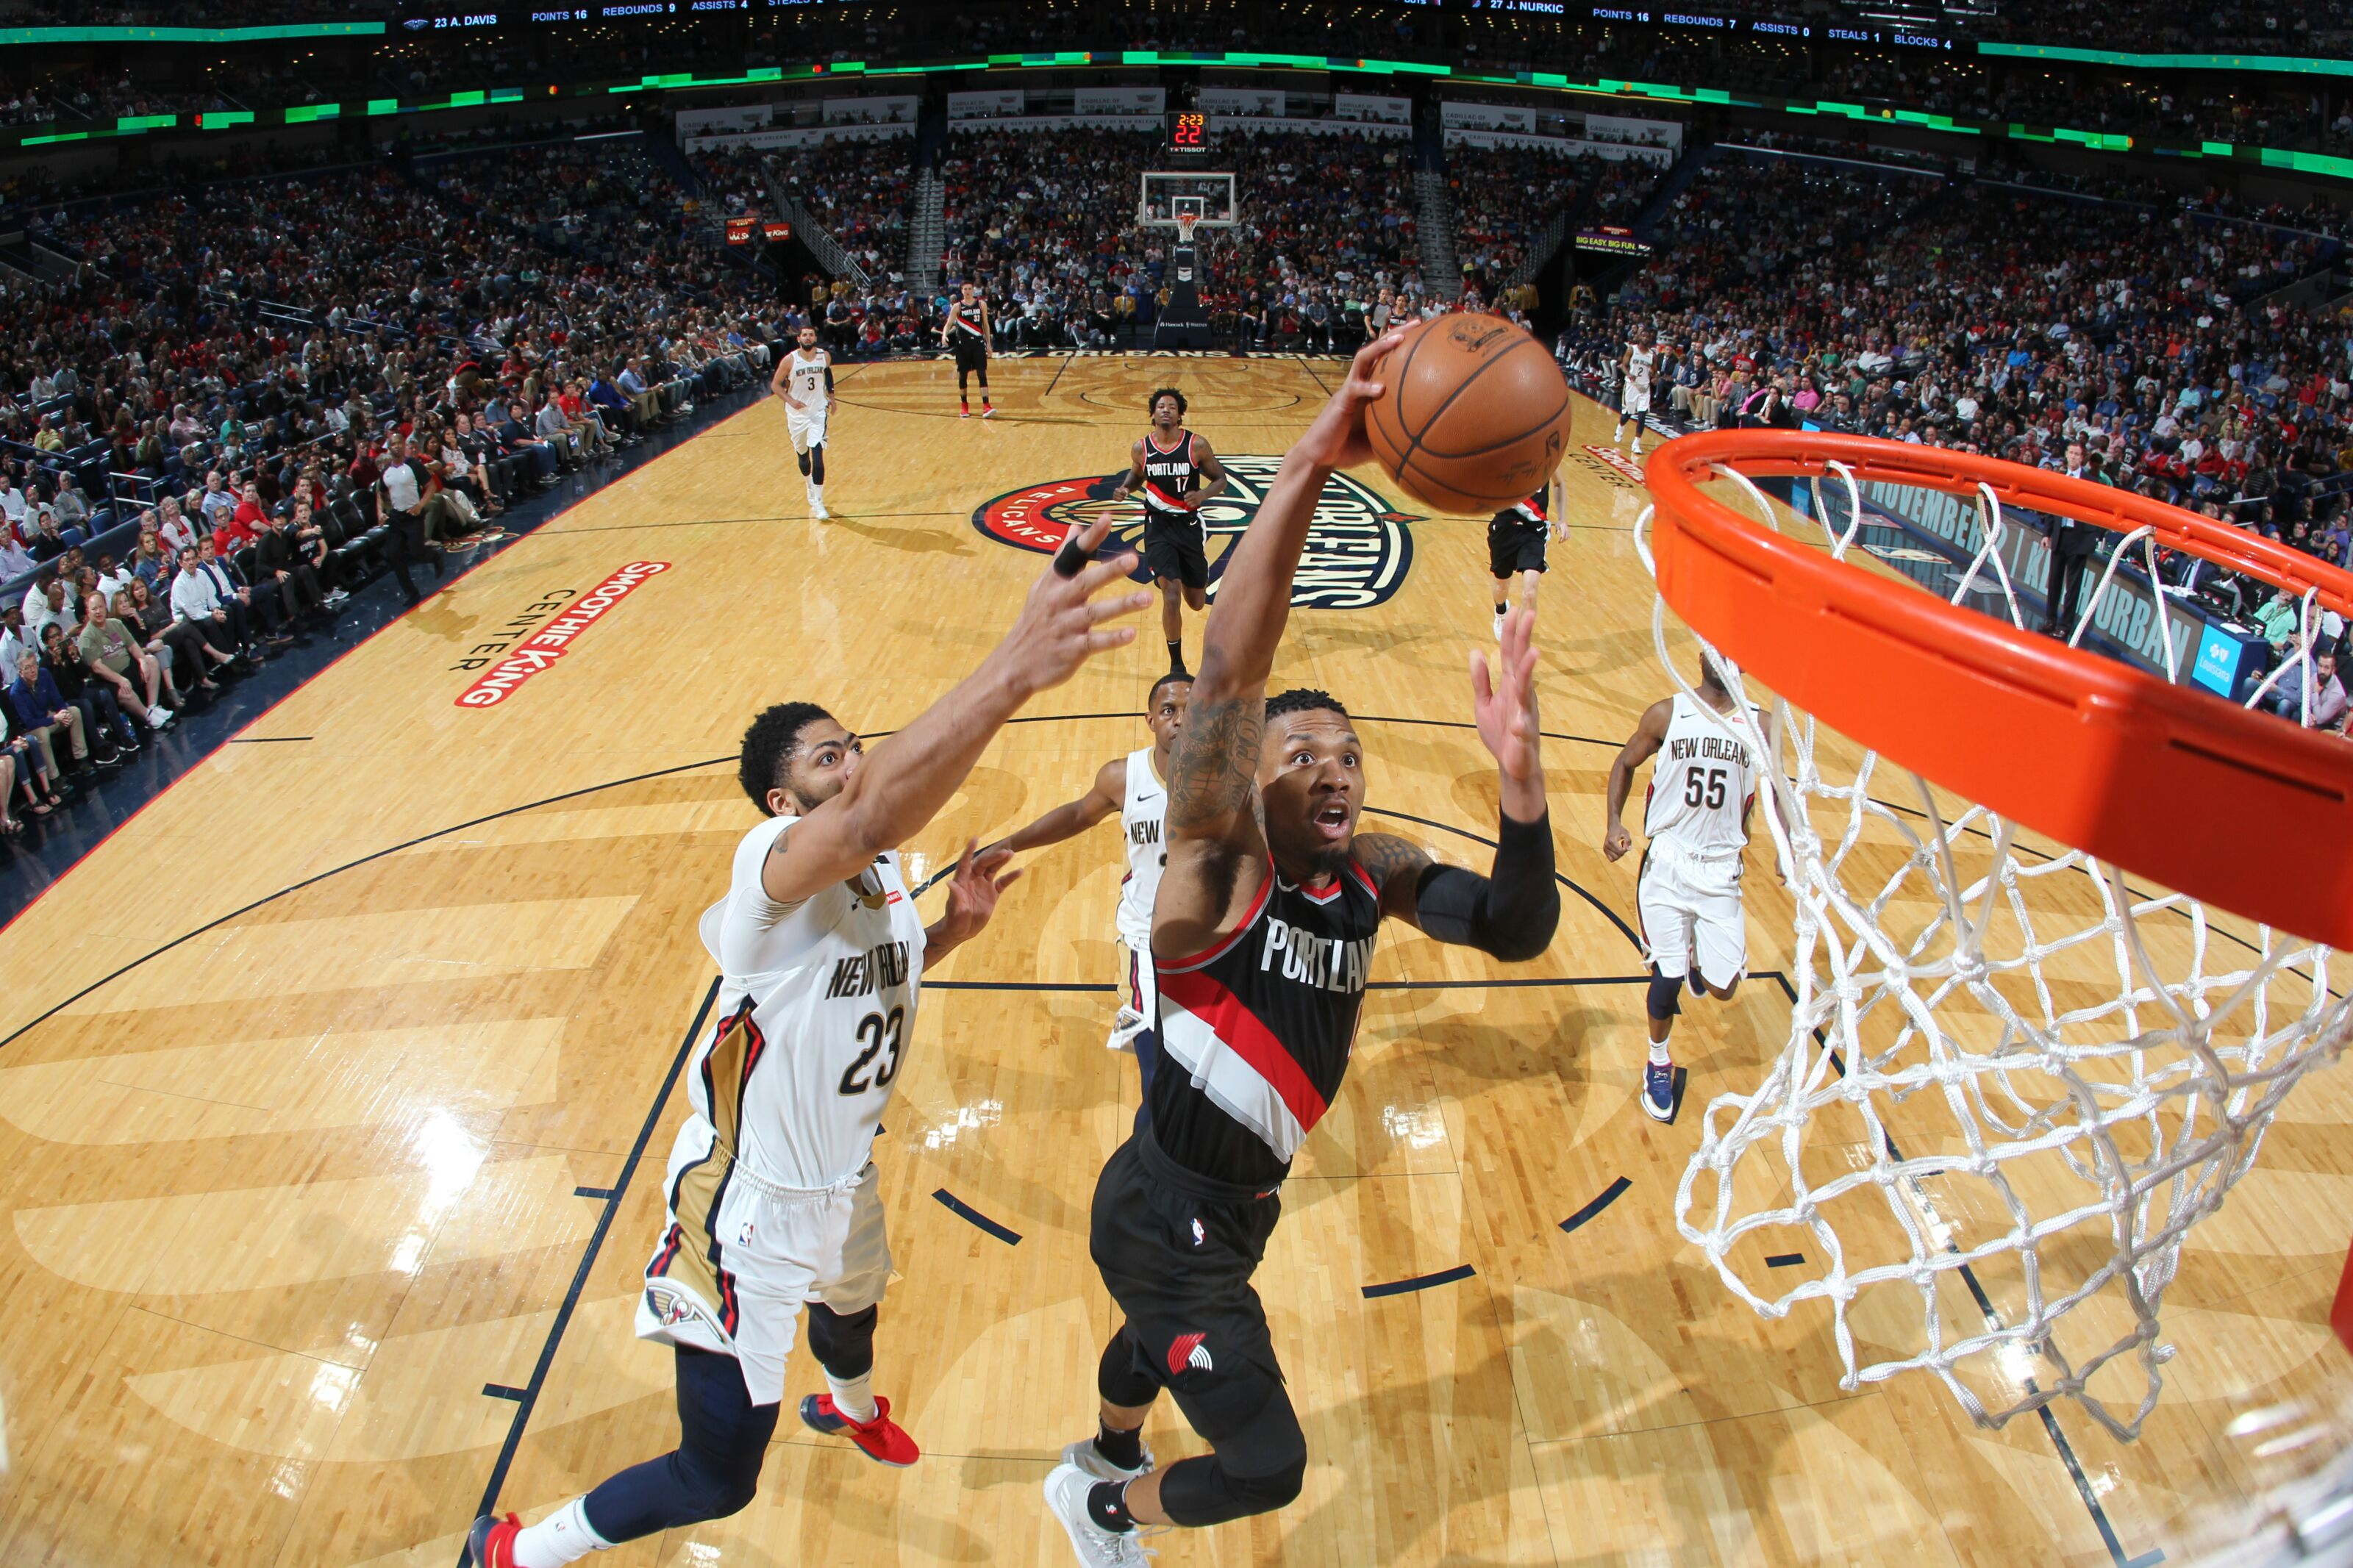 NBA Playoffs 2018 Portland Trail Blazers Vs. New Orleans Pelicans Game 1 Live Stream Watch Online